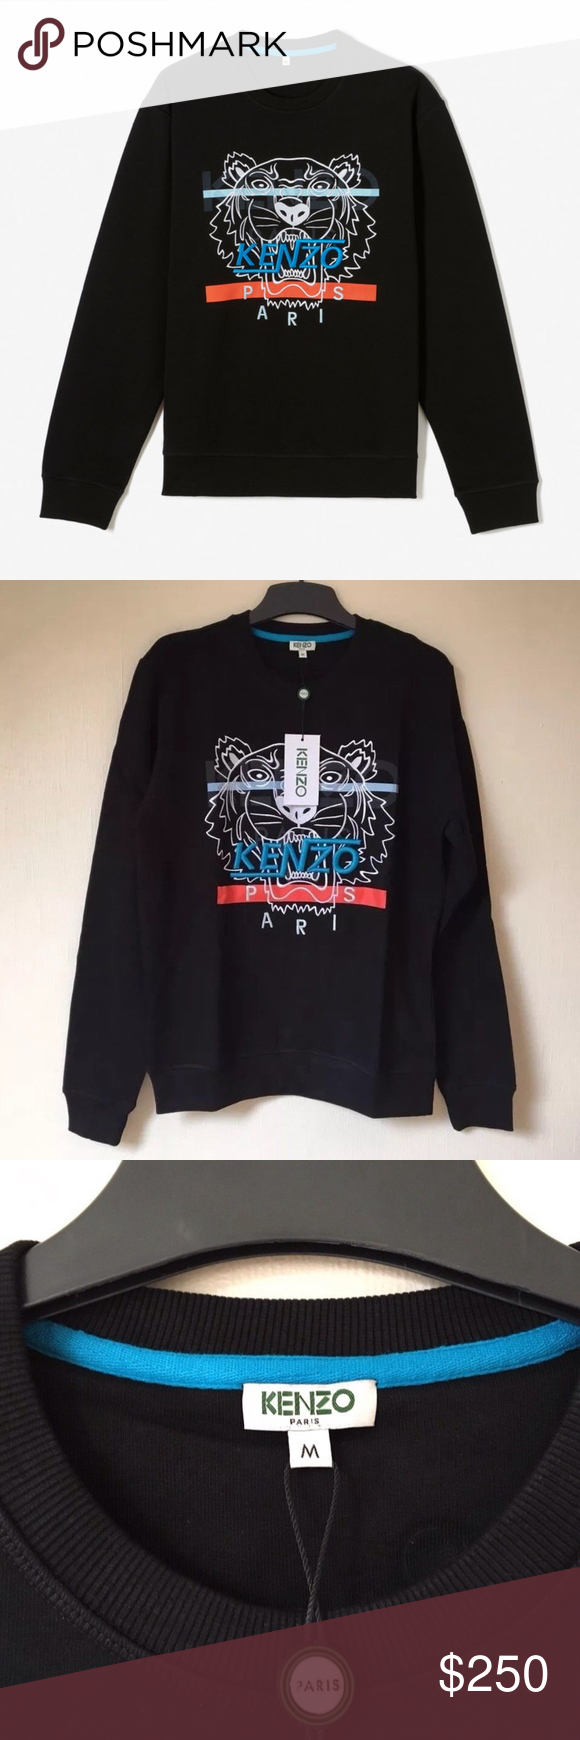 e1d7402a278251 KENZO Men's HYPER TIGER SWEATSHIRT BLACK NEW BRAND NEW, UNWORN, WITH TAGS,  IN